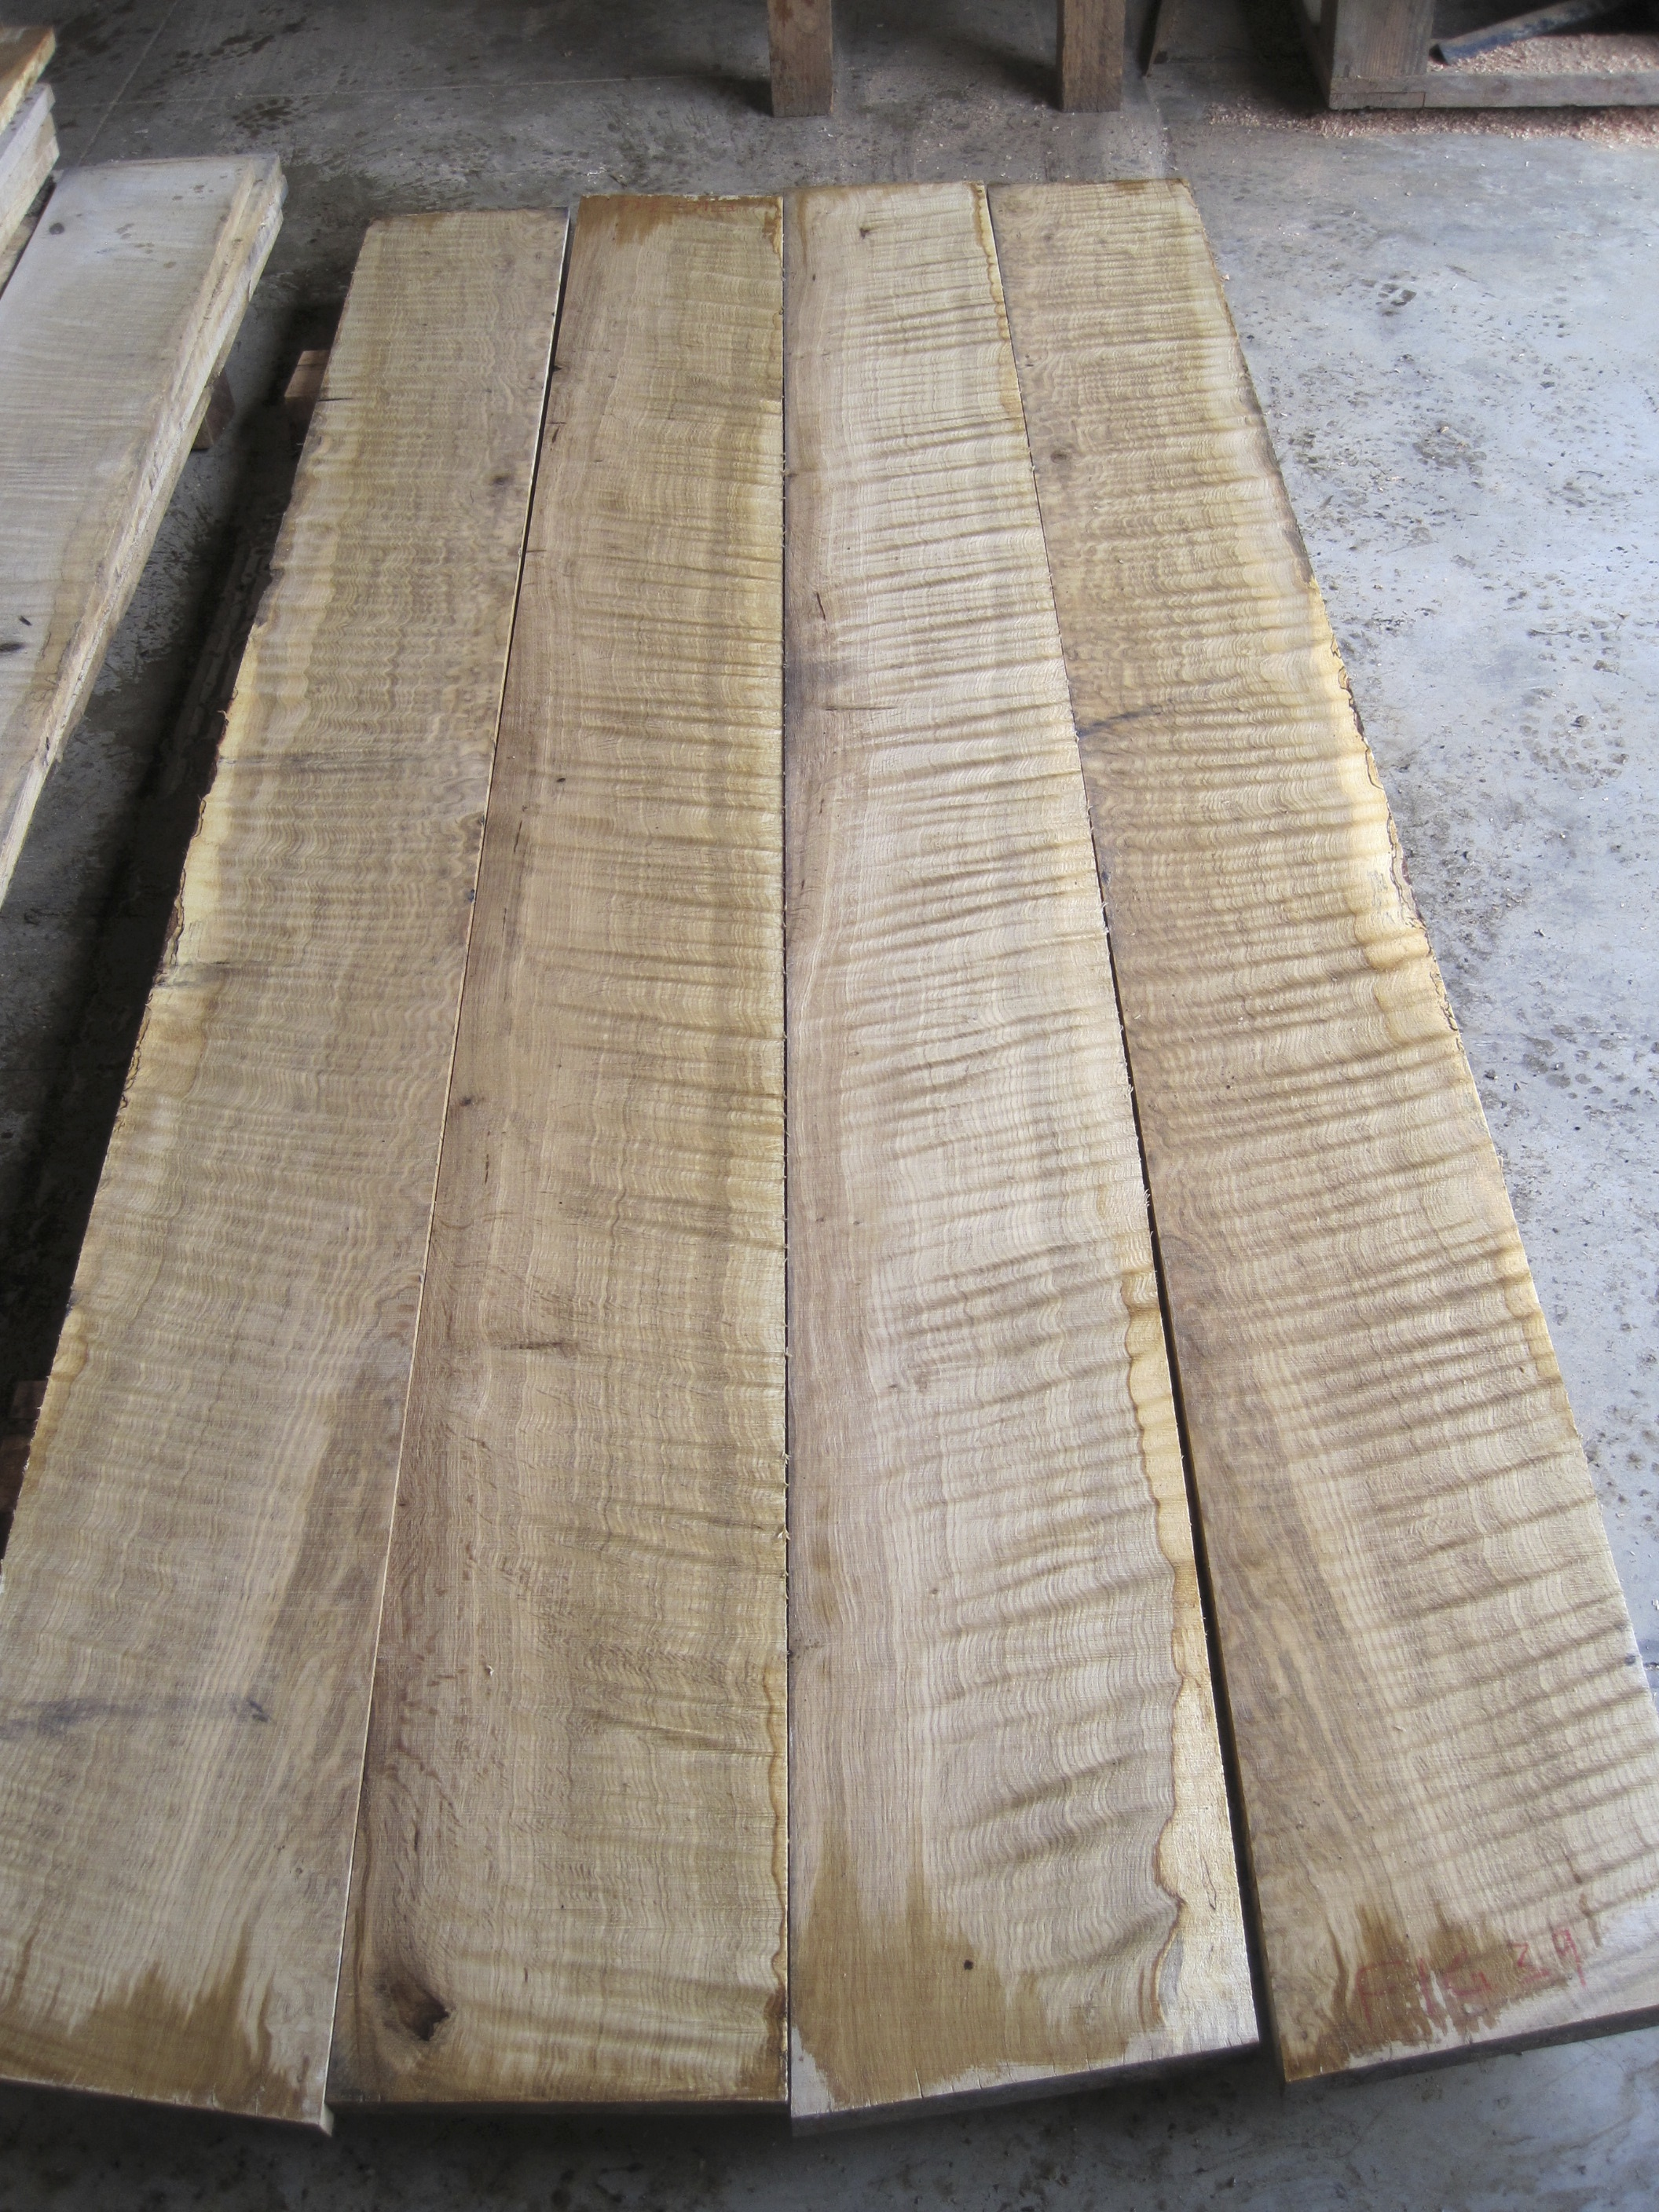 Quilted Oregon White Oak